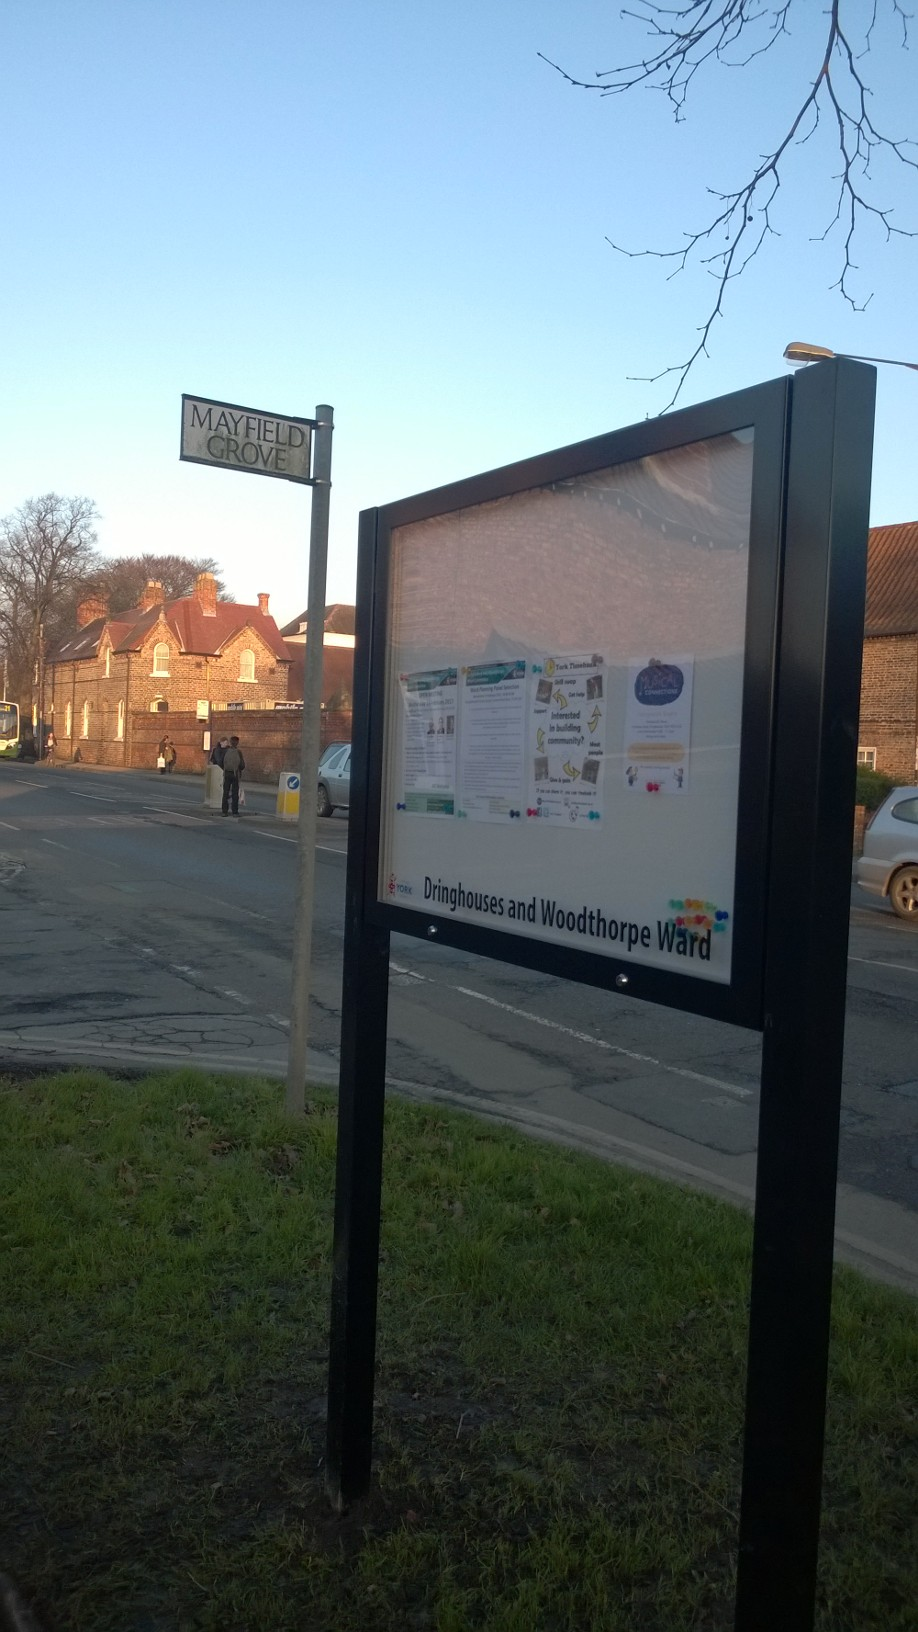 Mayfield Grove noticeboard